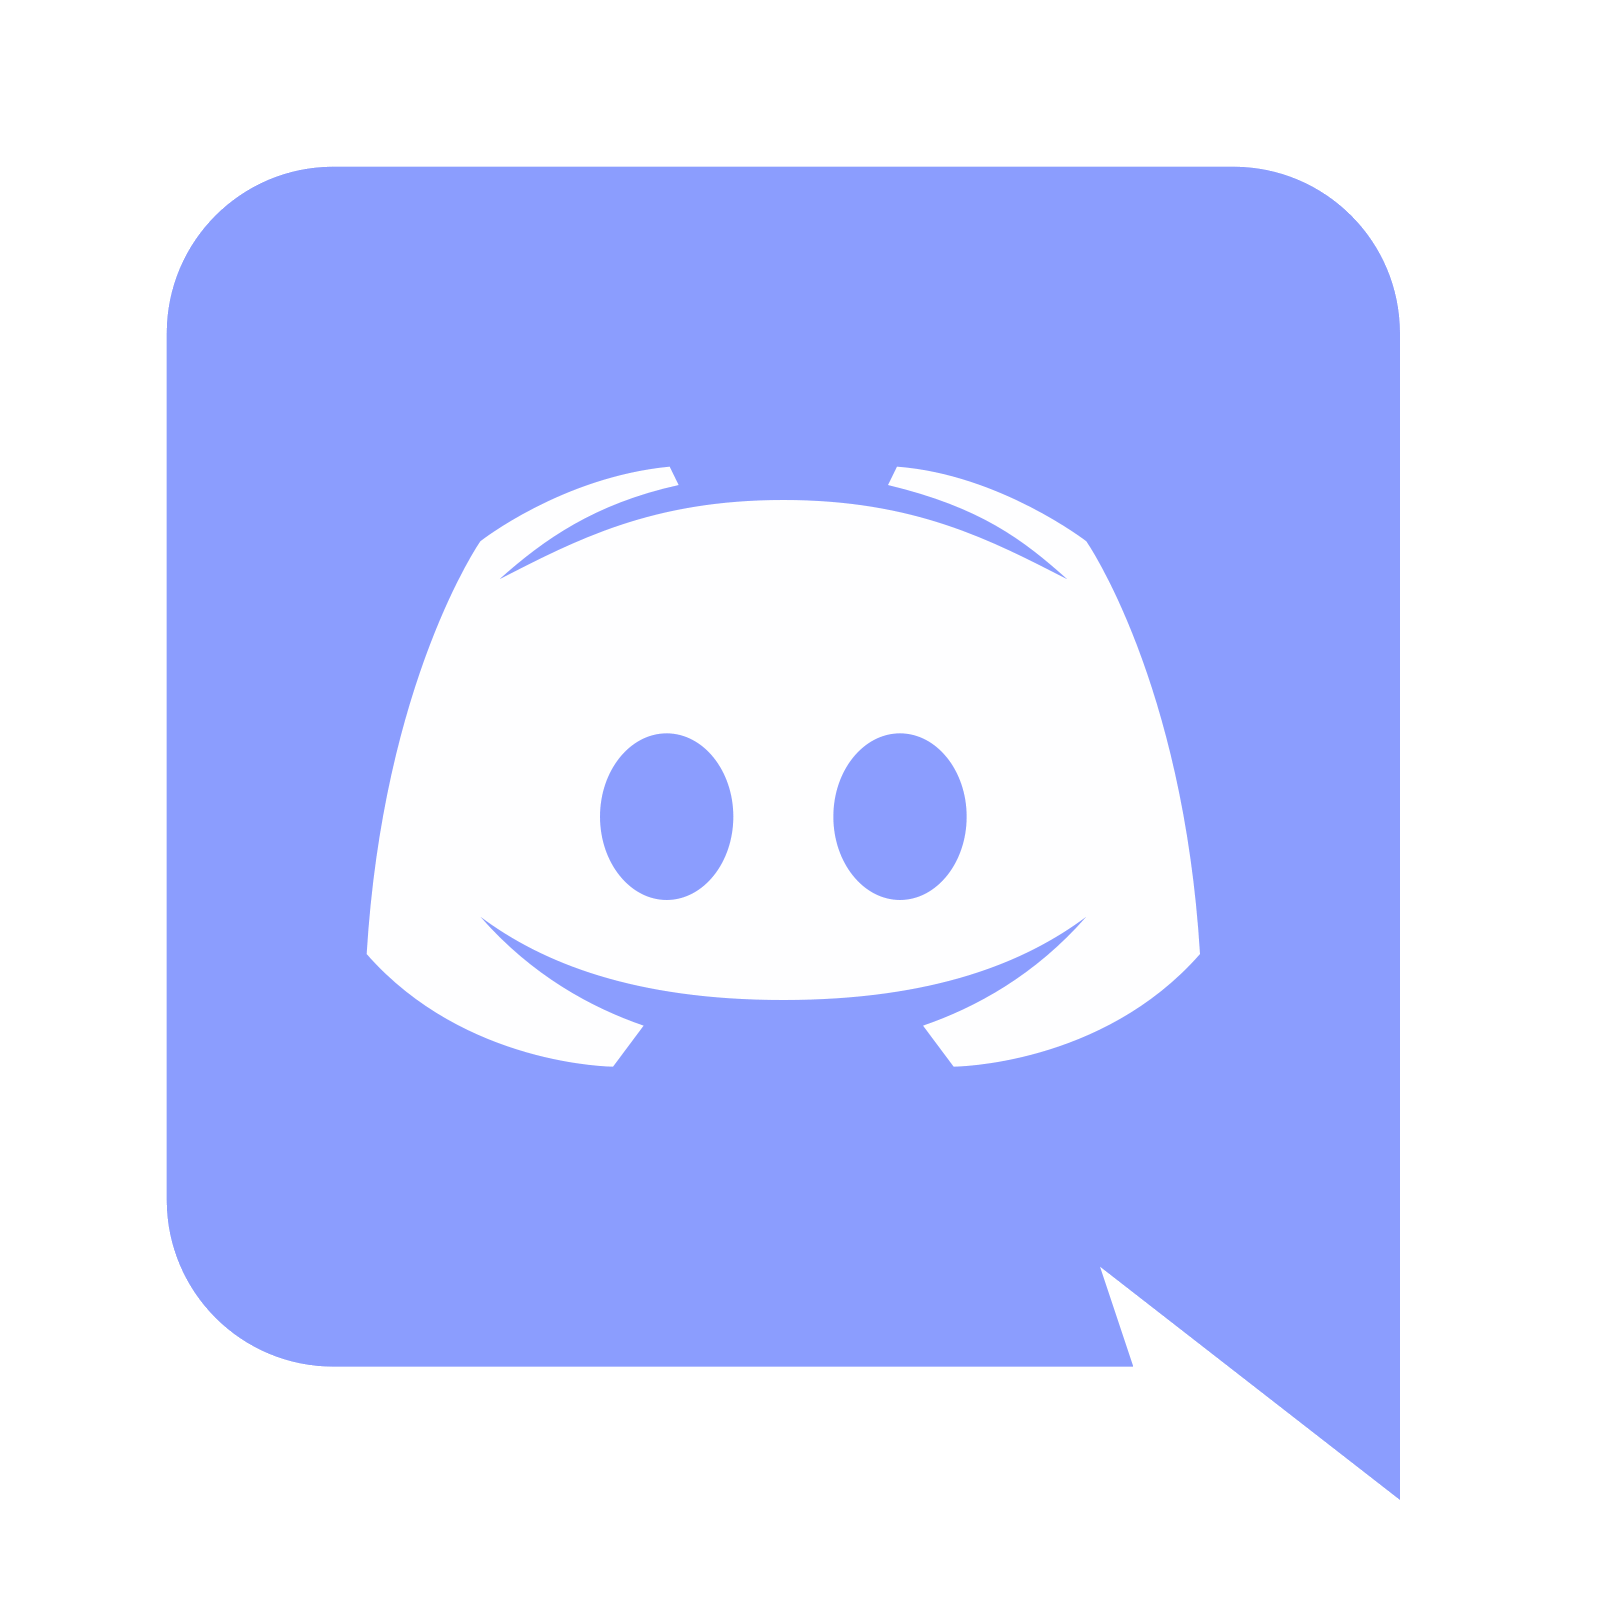 discord-new-logo.png